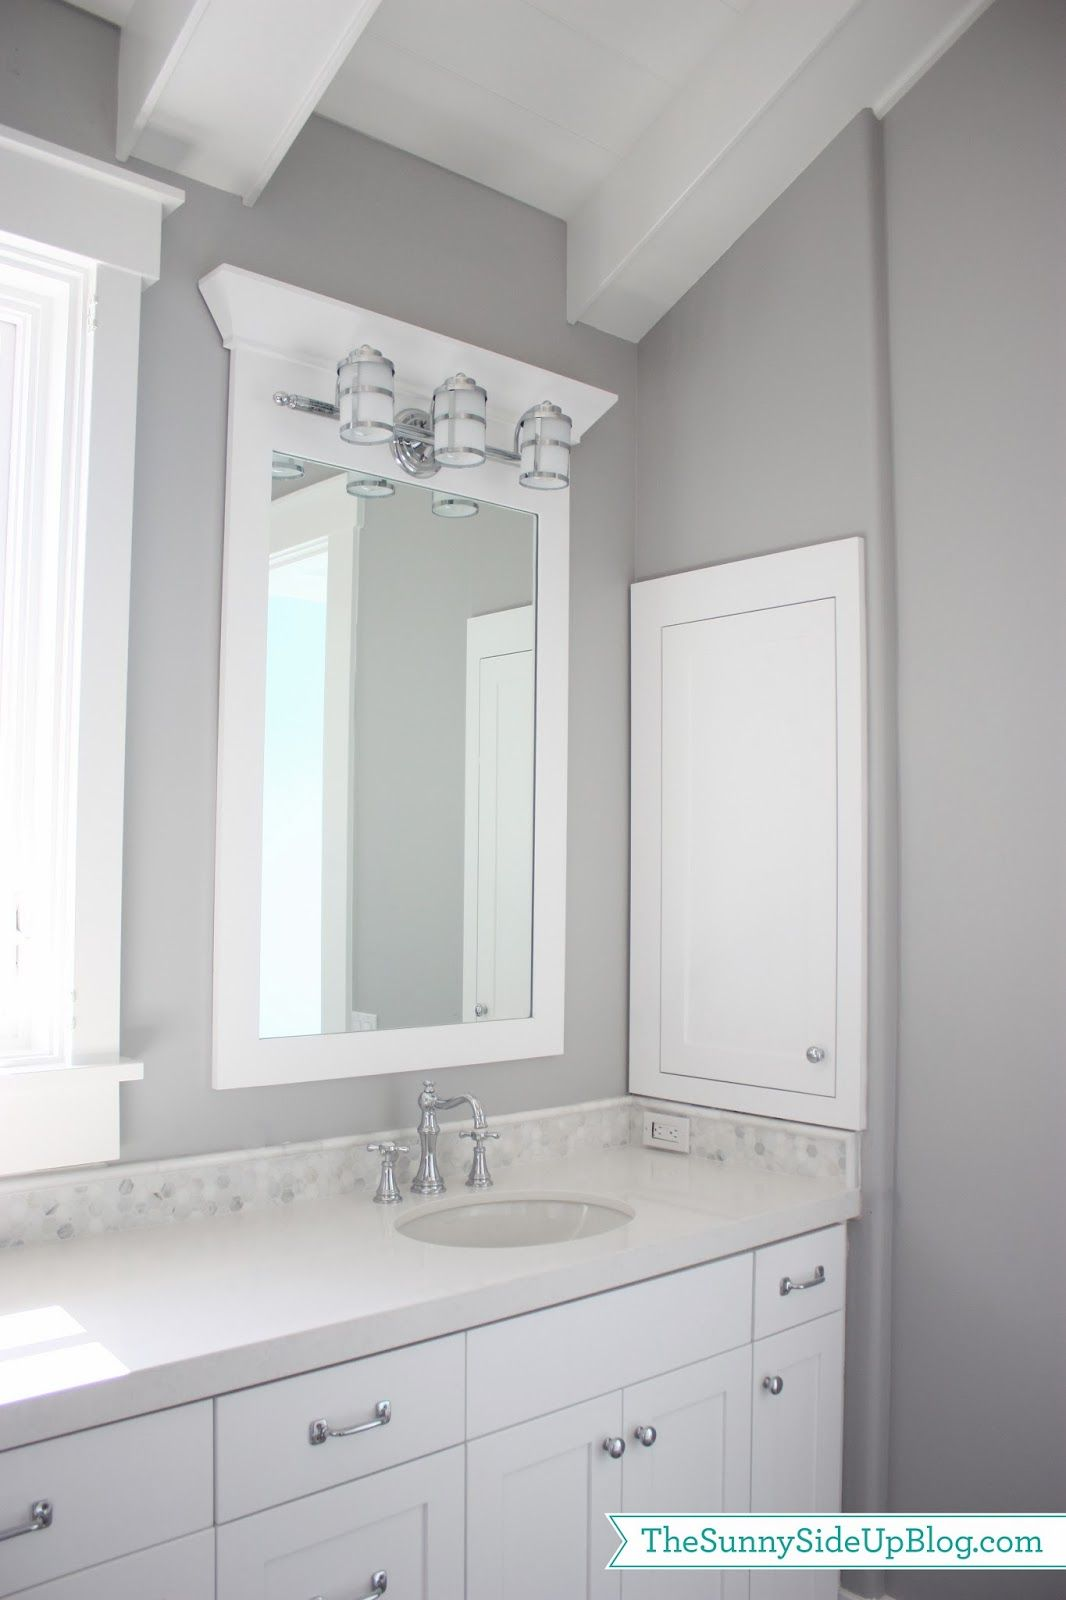 Sharing some pics of my girls' new bathroom today! Before I start overloading you all with pictures of the new house I need to warn you that you'll be seeing A LOT of white and grey. Obviously I love white cabinets and white moldings and grey paint, but I also did this because I love …